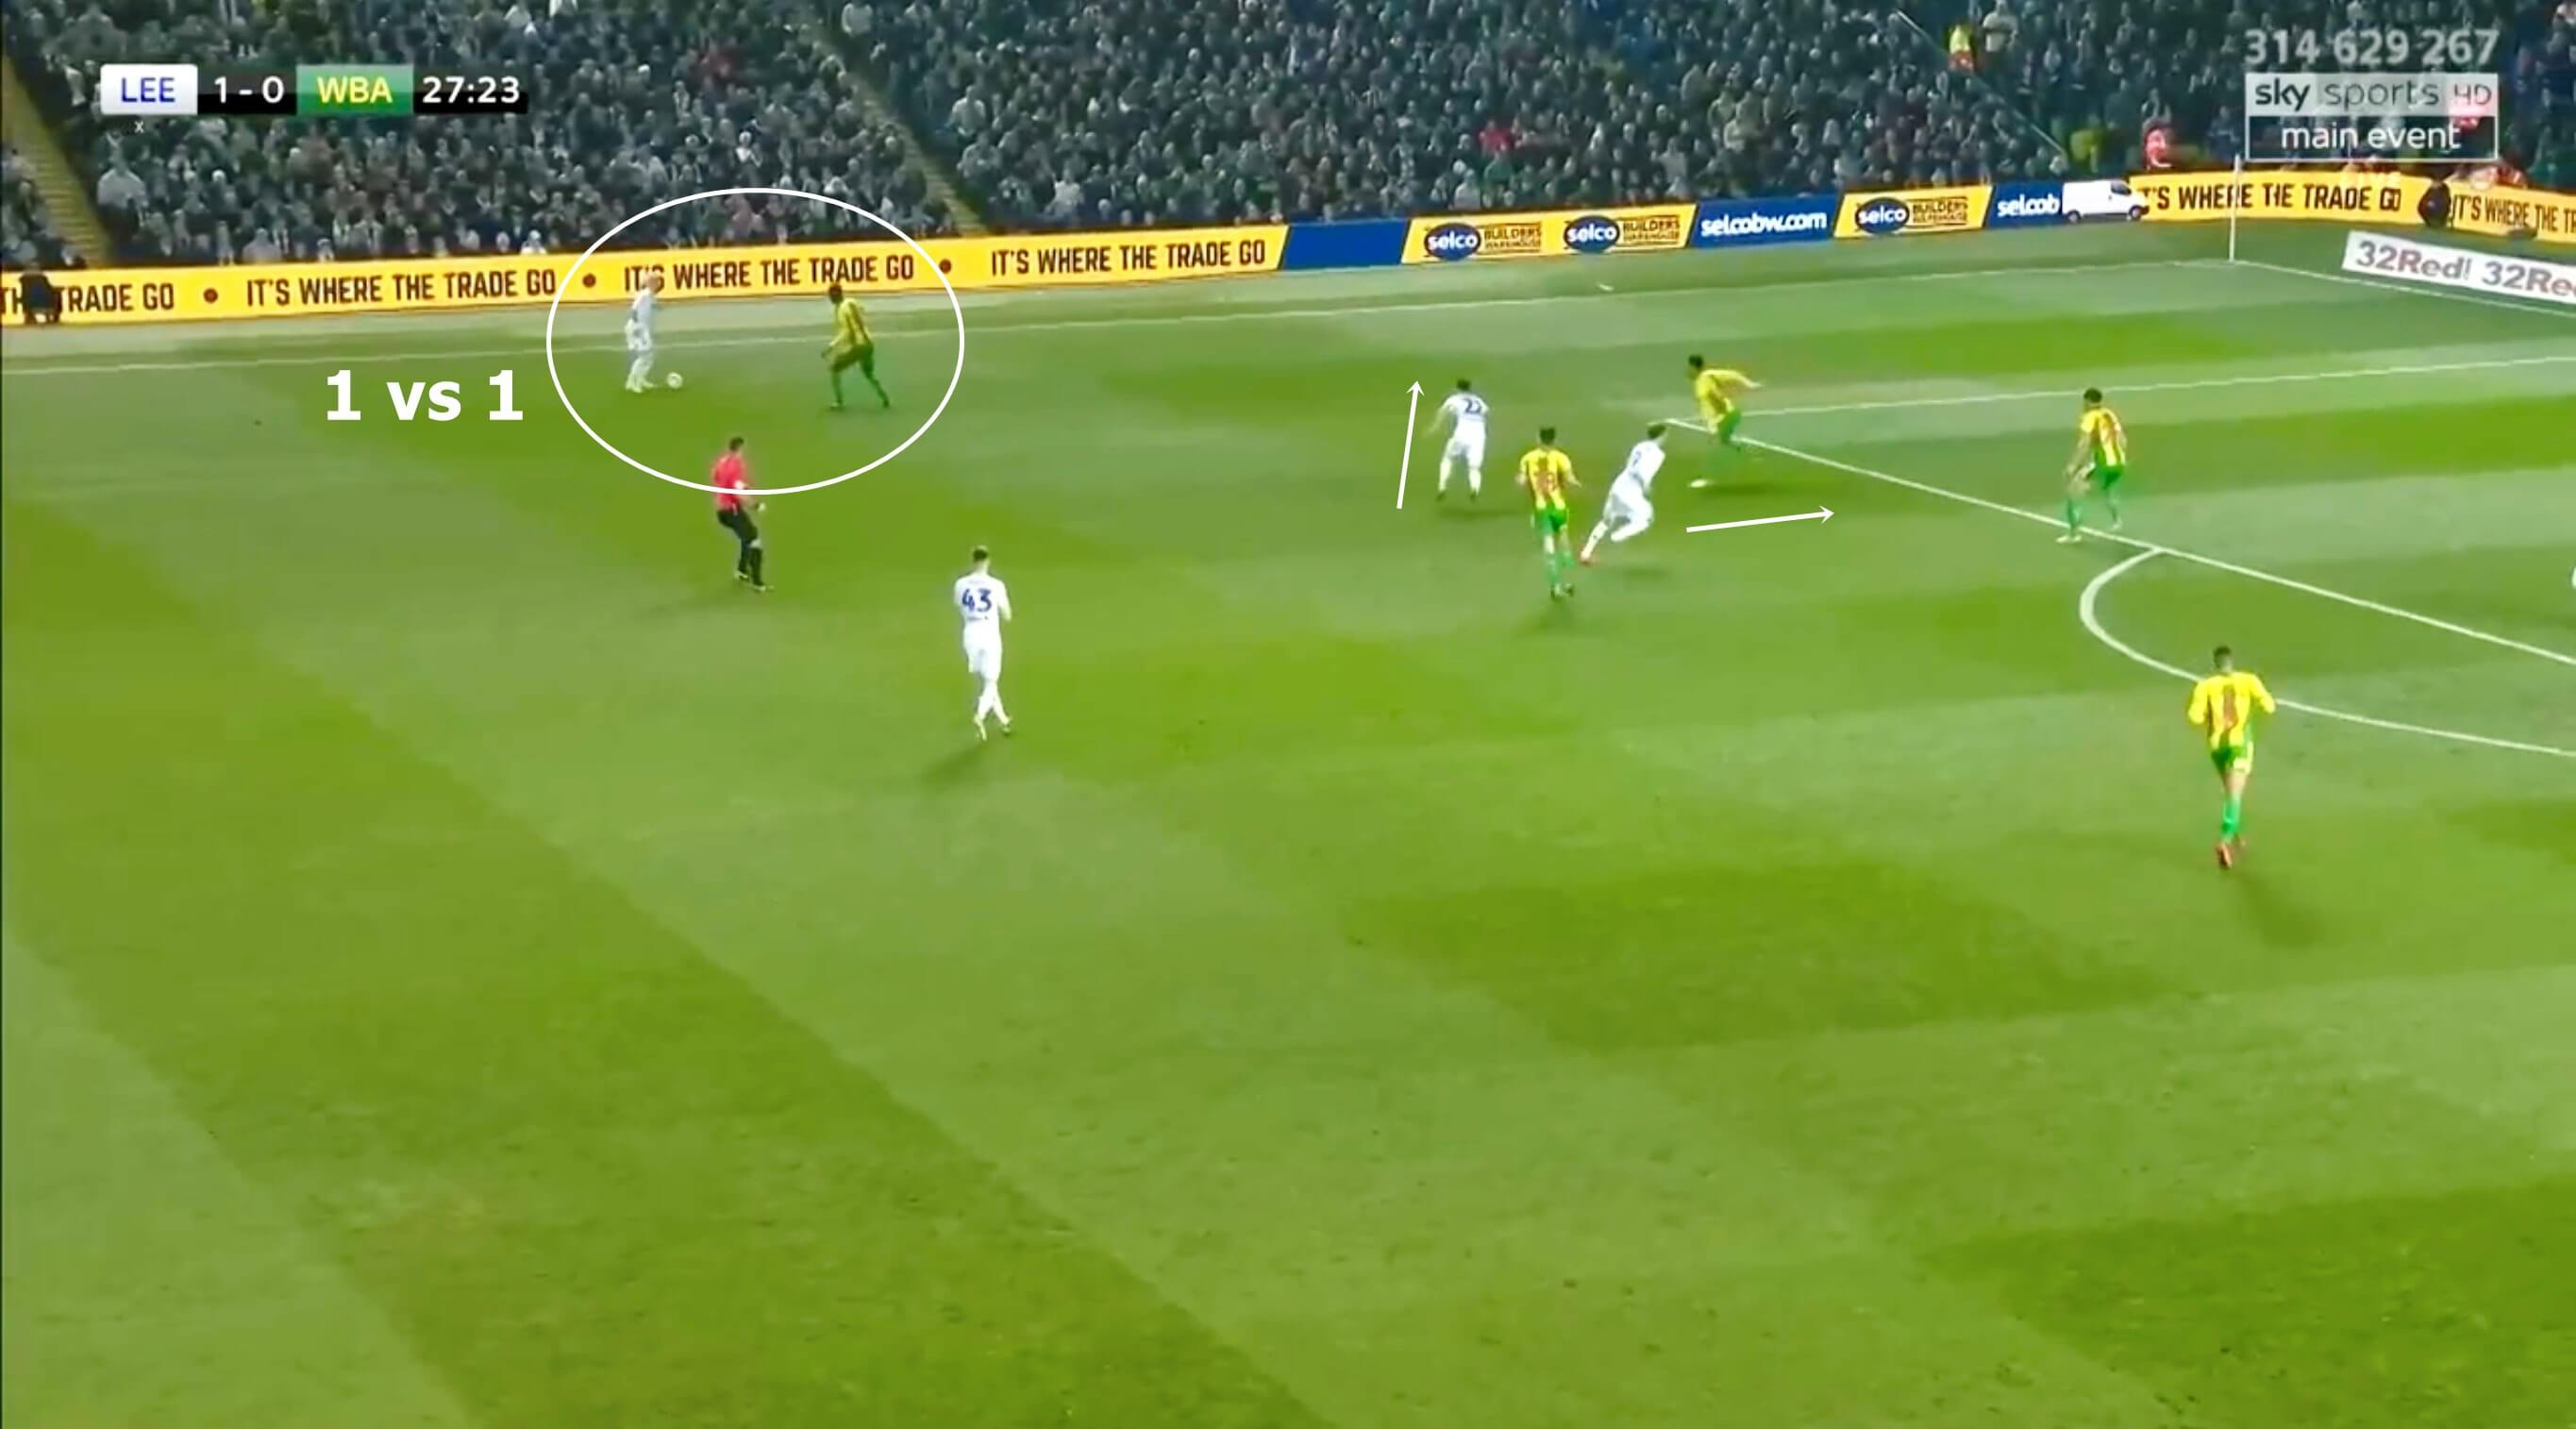 Leeds vs West Brom Championship 2018/19 Tactical Analysis